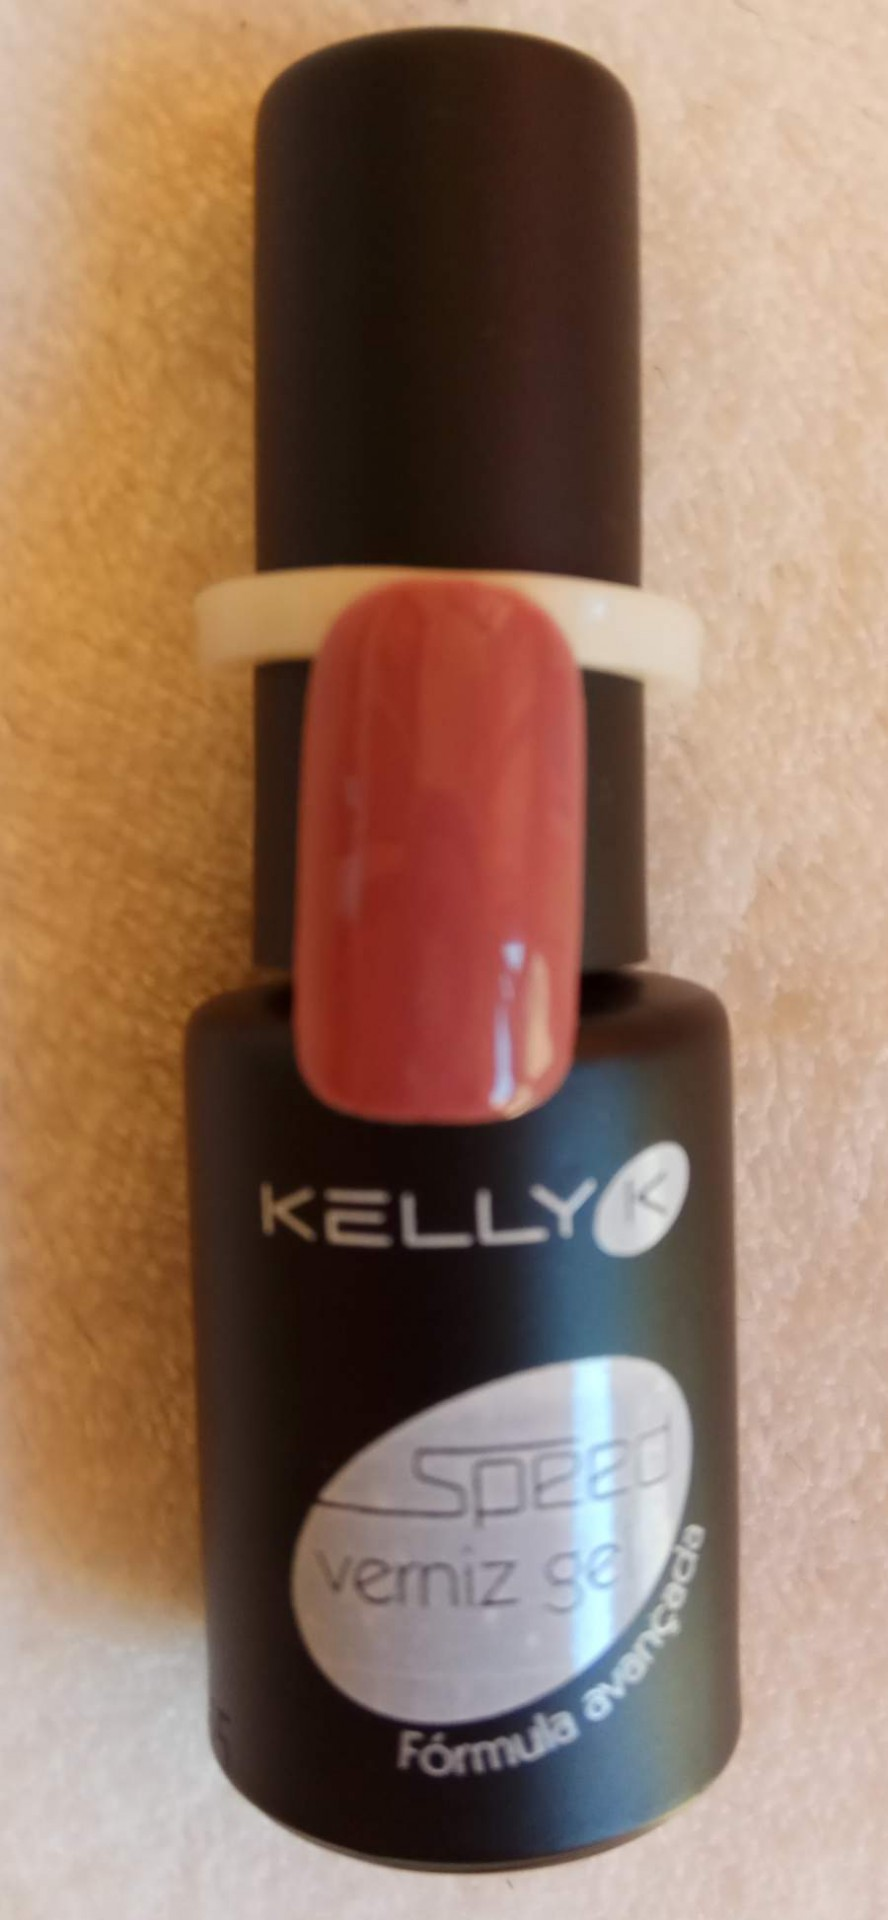 Verniz Gel Kelly K S16 - 6 ml